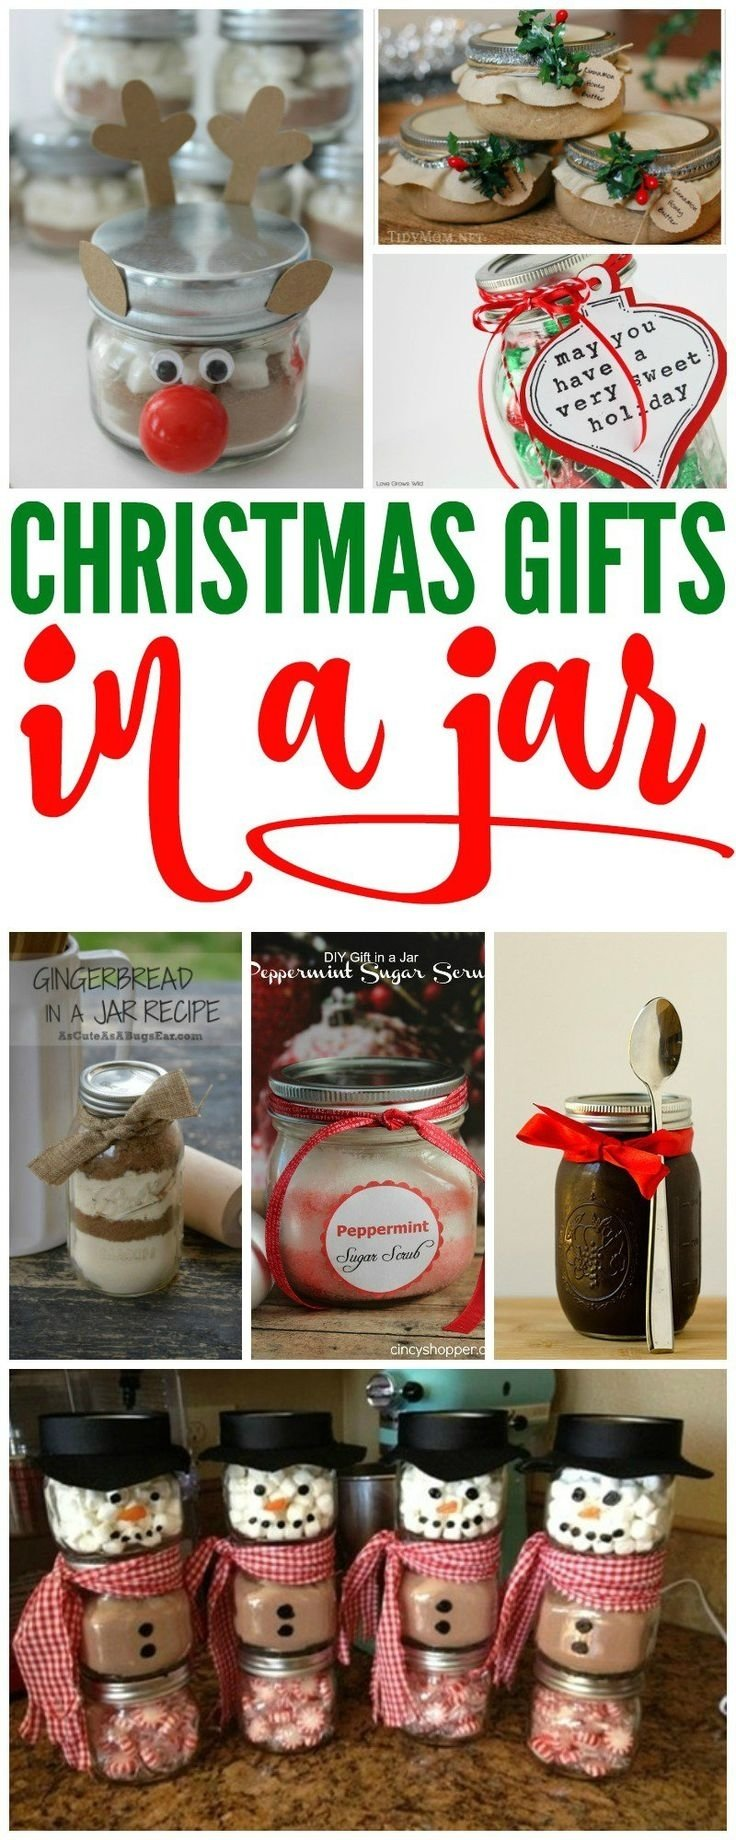 10 Lovely Couples Gift Ideas For Christmas 1134 best gift ideas images on pinterest a kiss basket of 2020